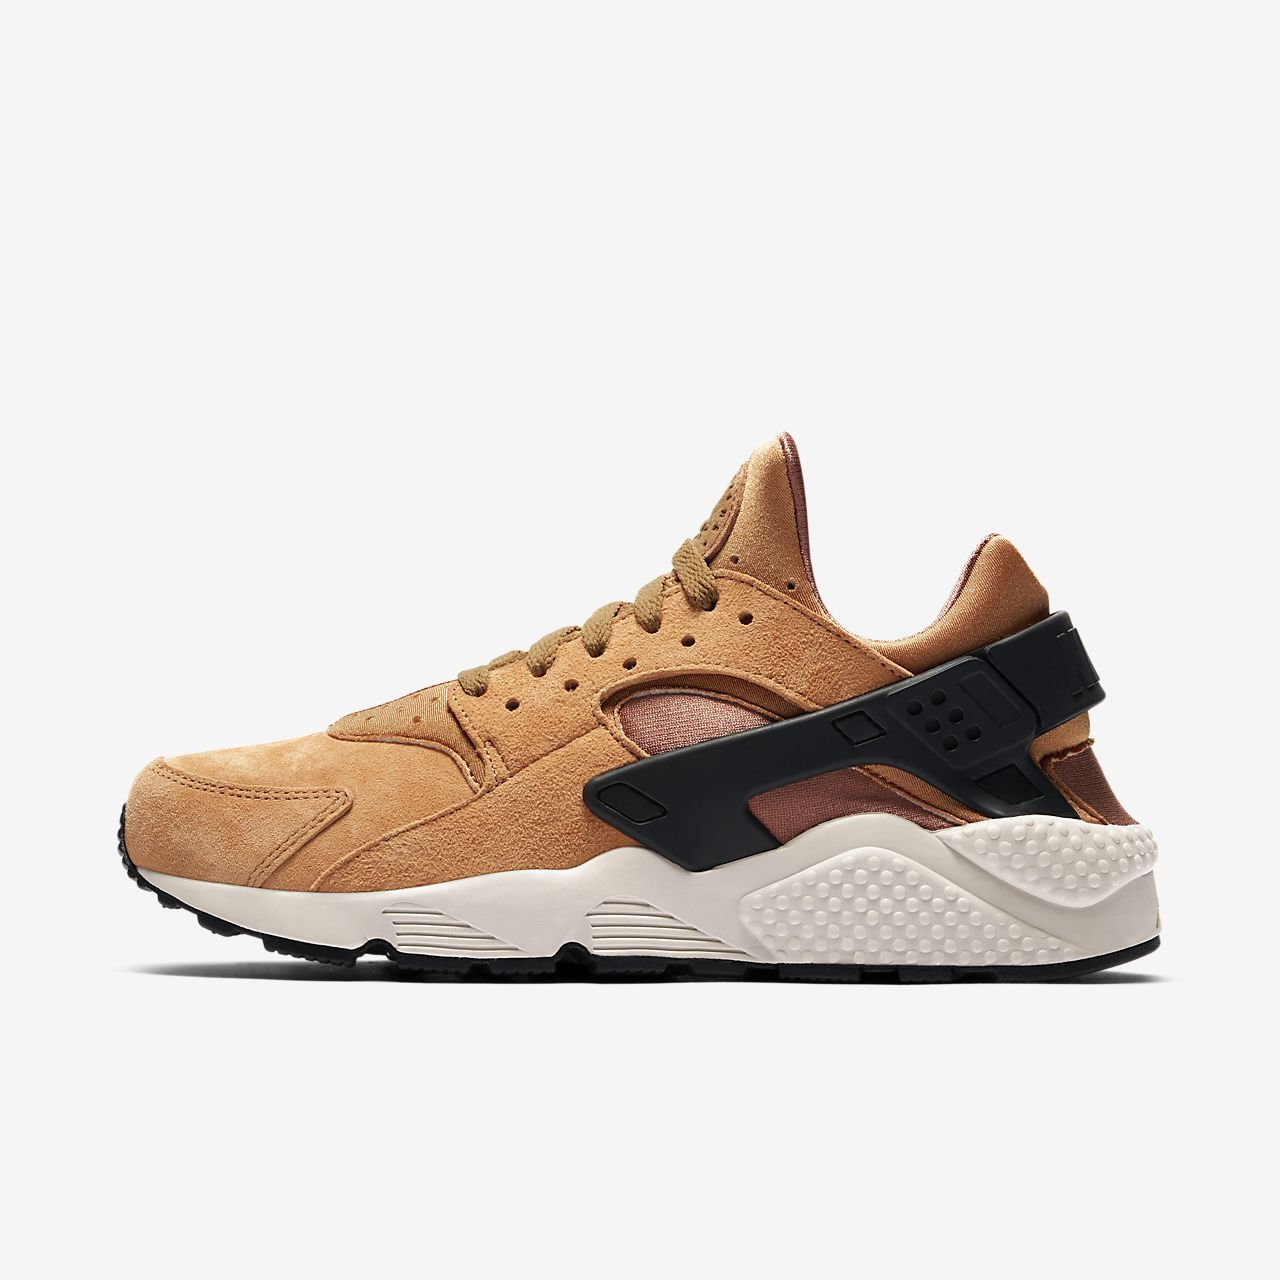 mike air huarache